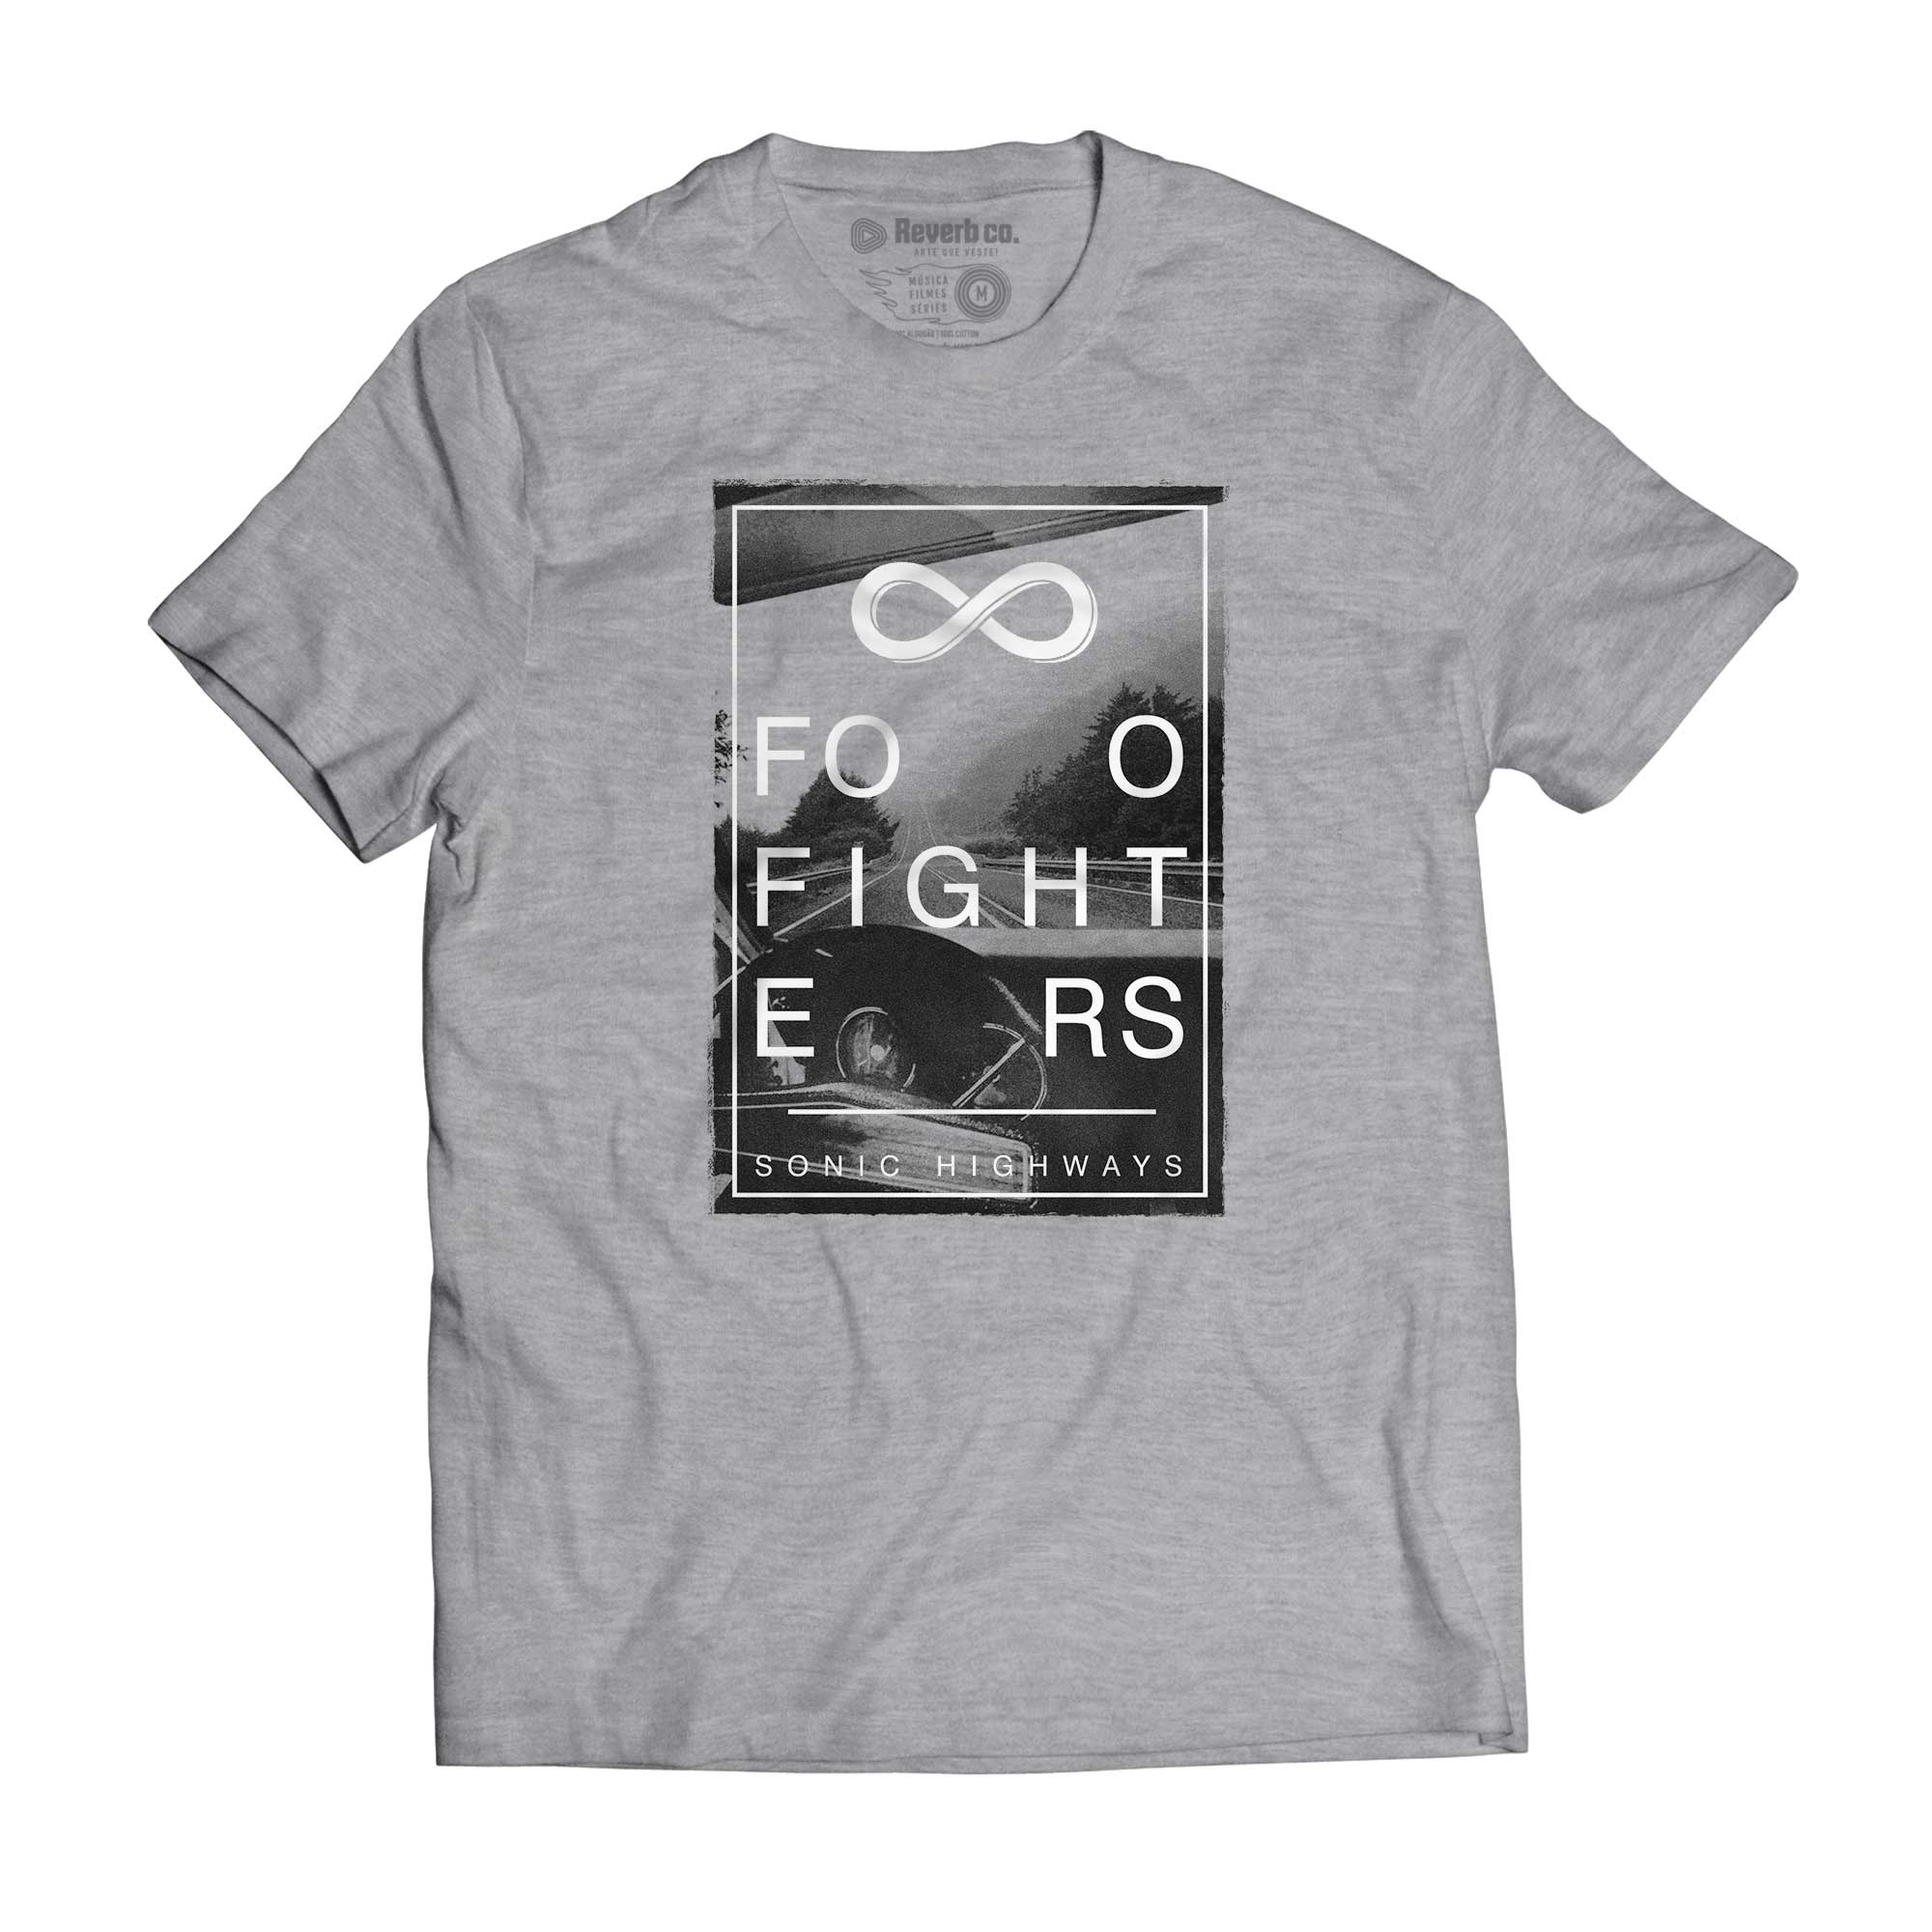 Camiseta Sonic Highways - Foo Fighters - Masculino